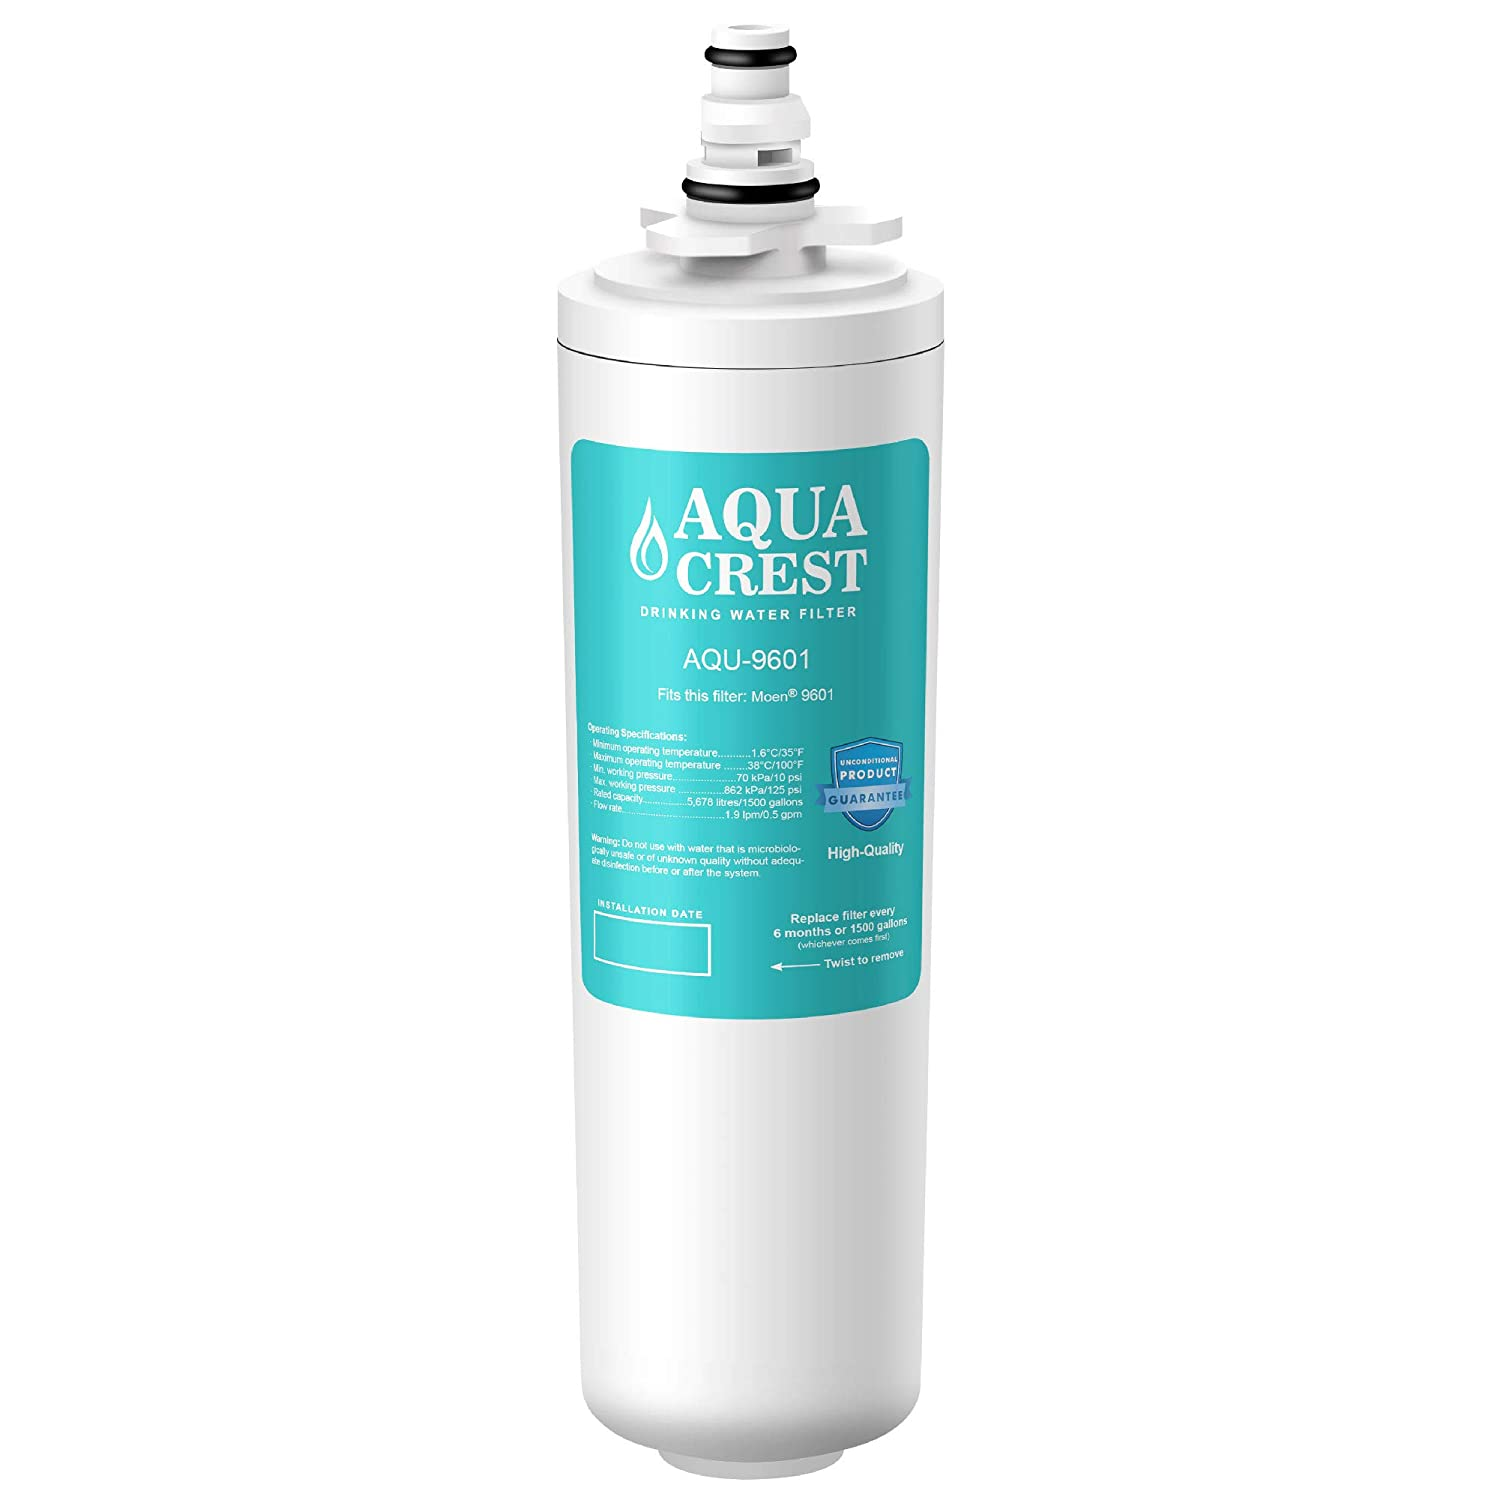 AQUACREST 9601 Water Filter, Compatible with Moen 9601 ChoiceFlo, 9600, Fits F87400, F7400, F87200, 77200, CAF87254, S5500 Series of Moen Faucets